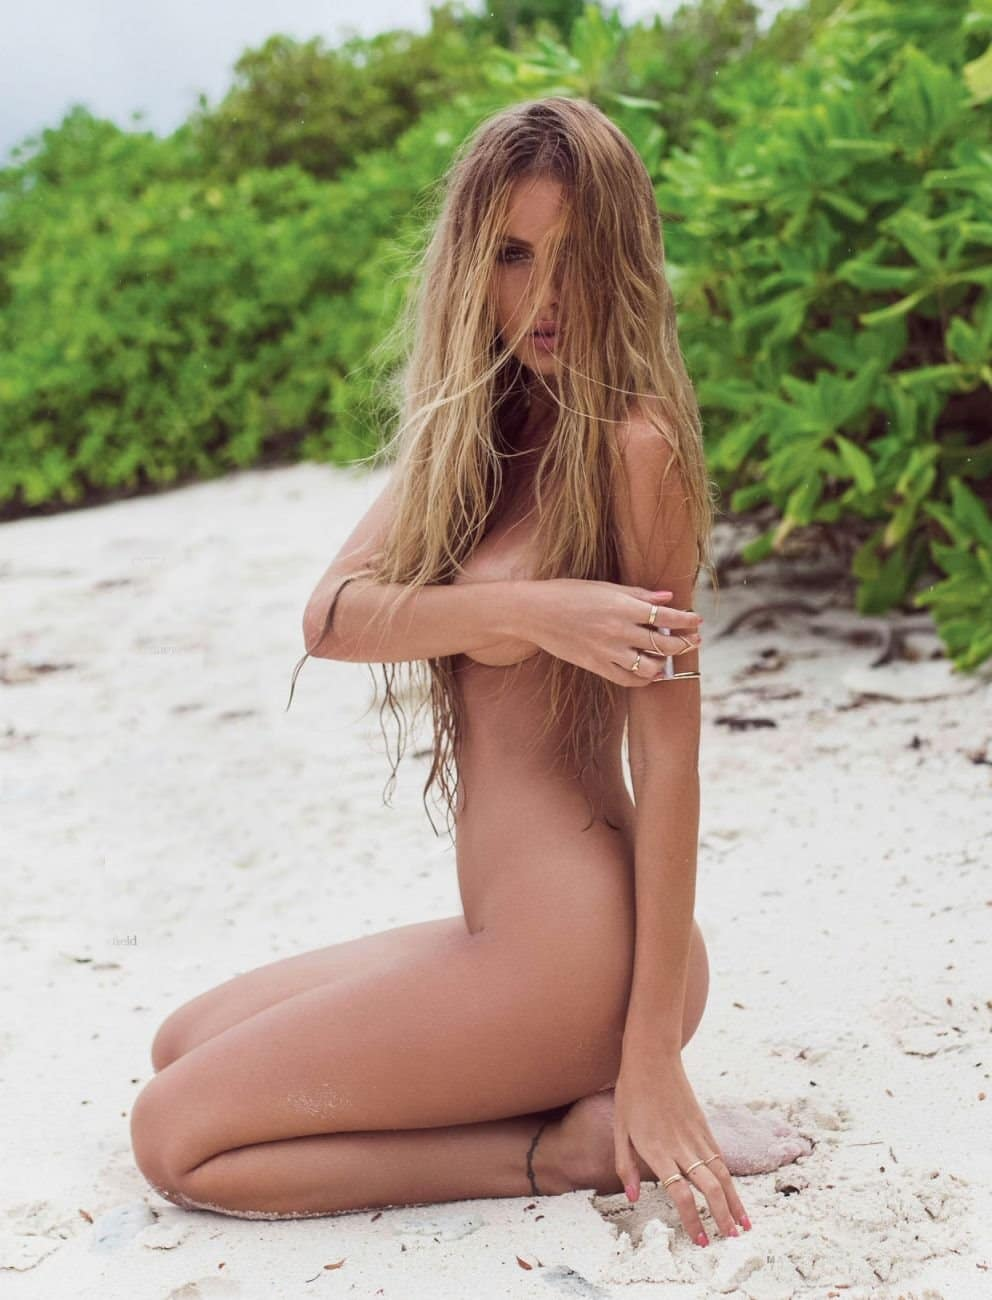 Elsa hosk in swimsuit on a boat in formentera nudes (46 photo)